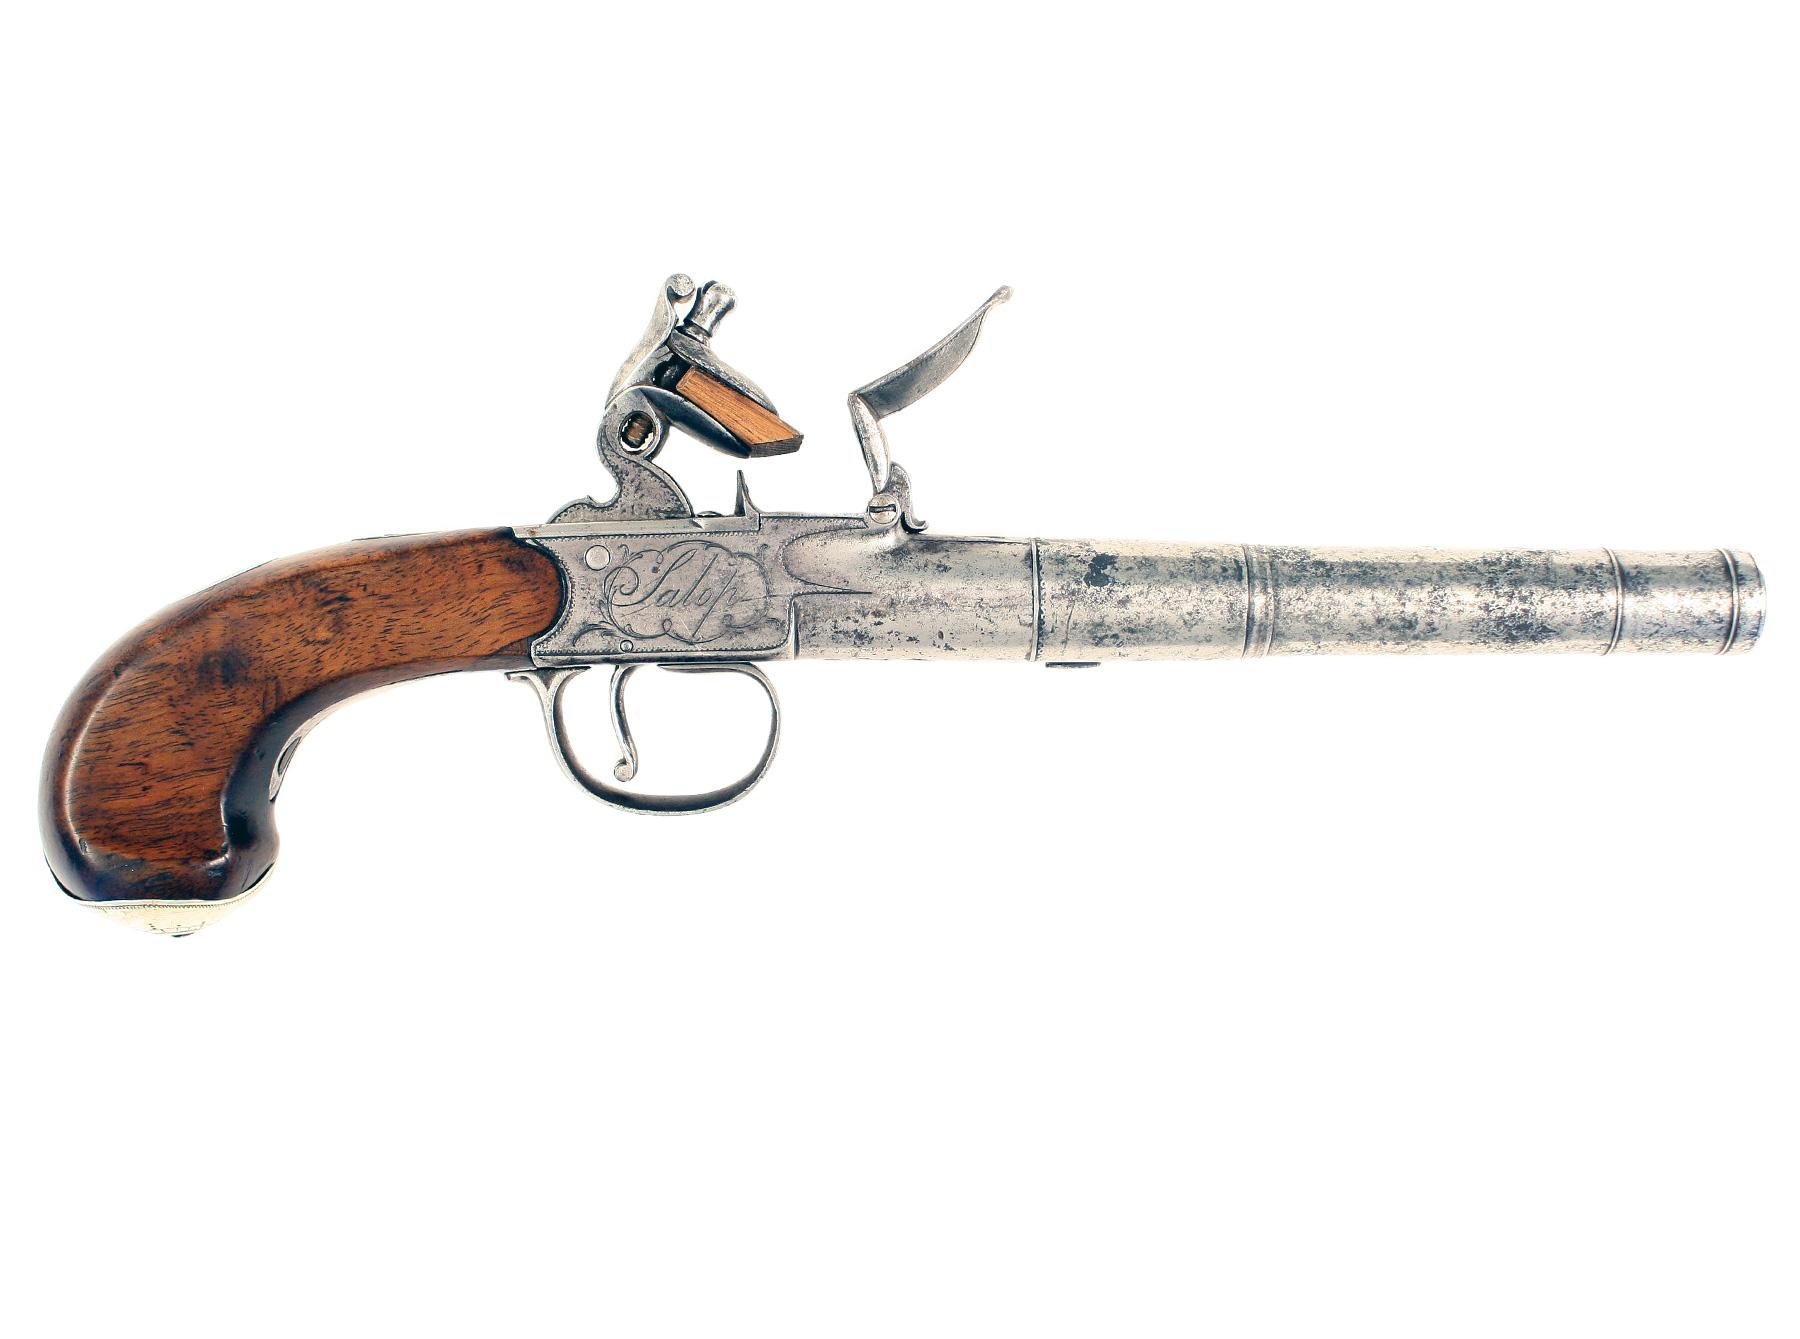 A 18-Bore Flintlock Cannon Barrelled Pistol by Manning